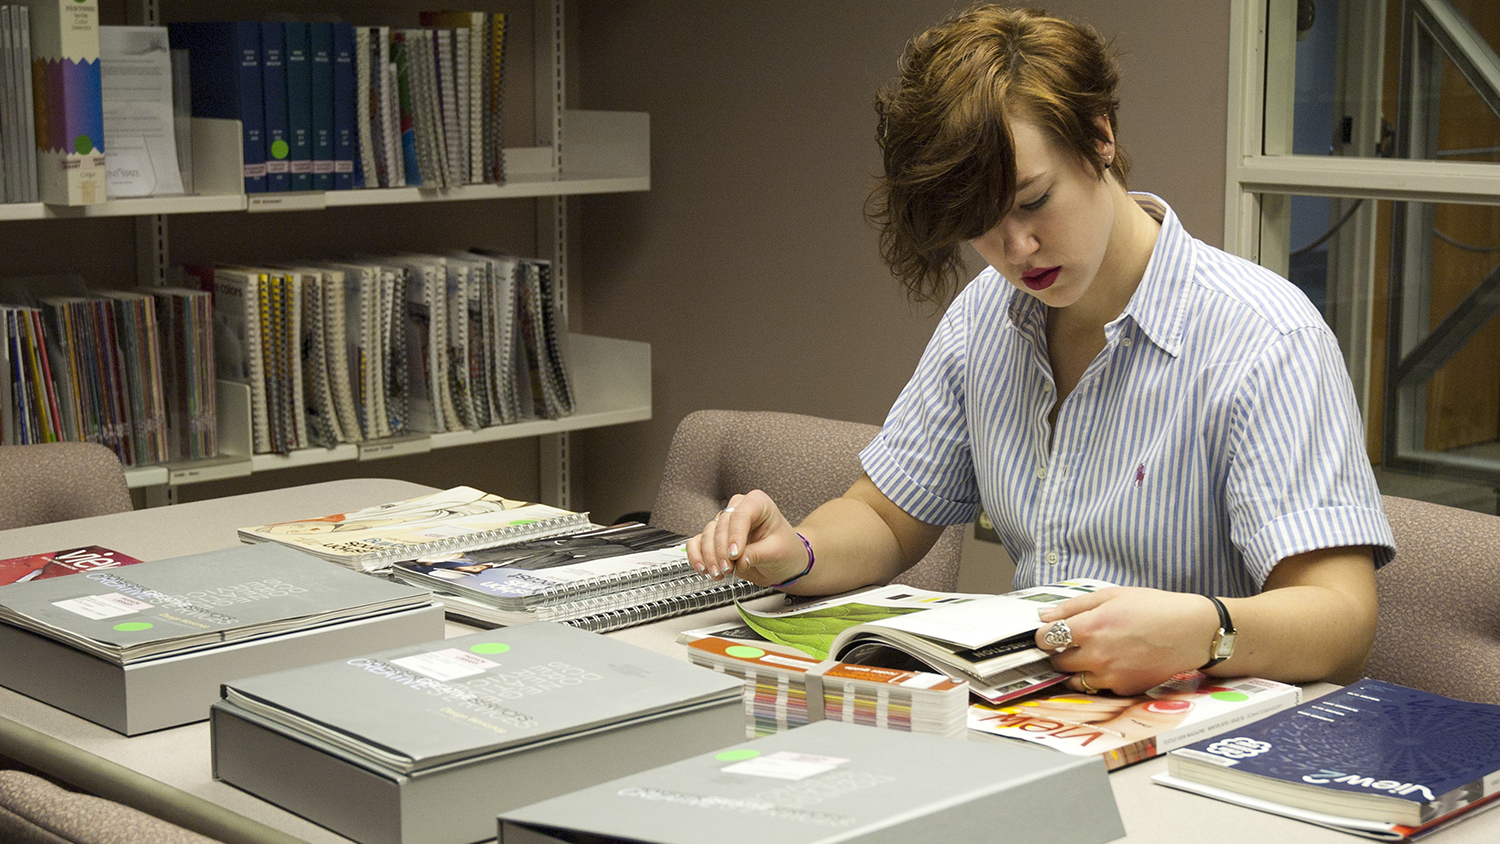 Student in Materials Room